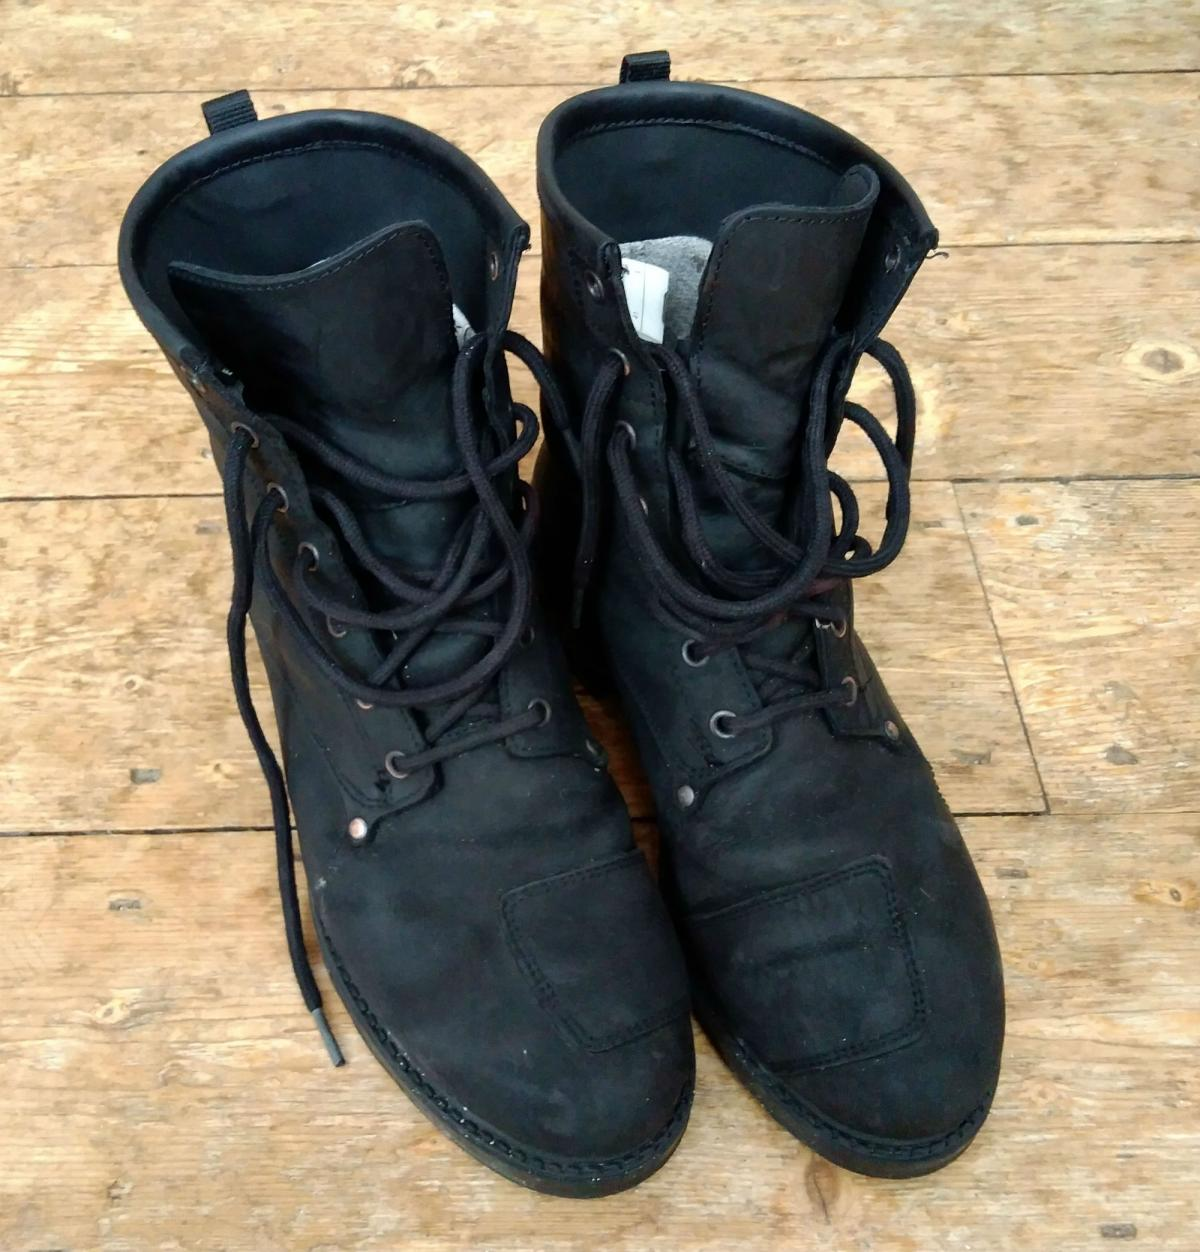 42c0f55706 Tested  TCX X-Blend waterproof boots review